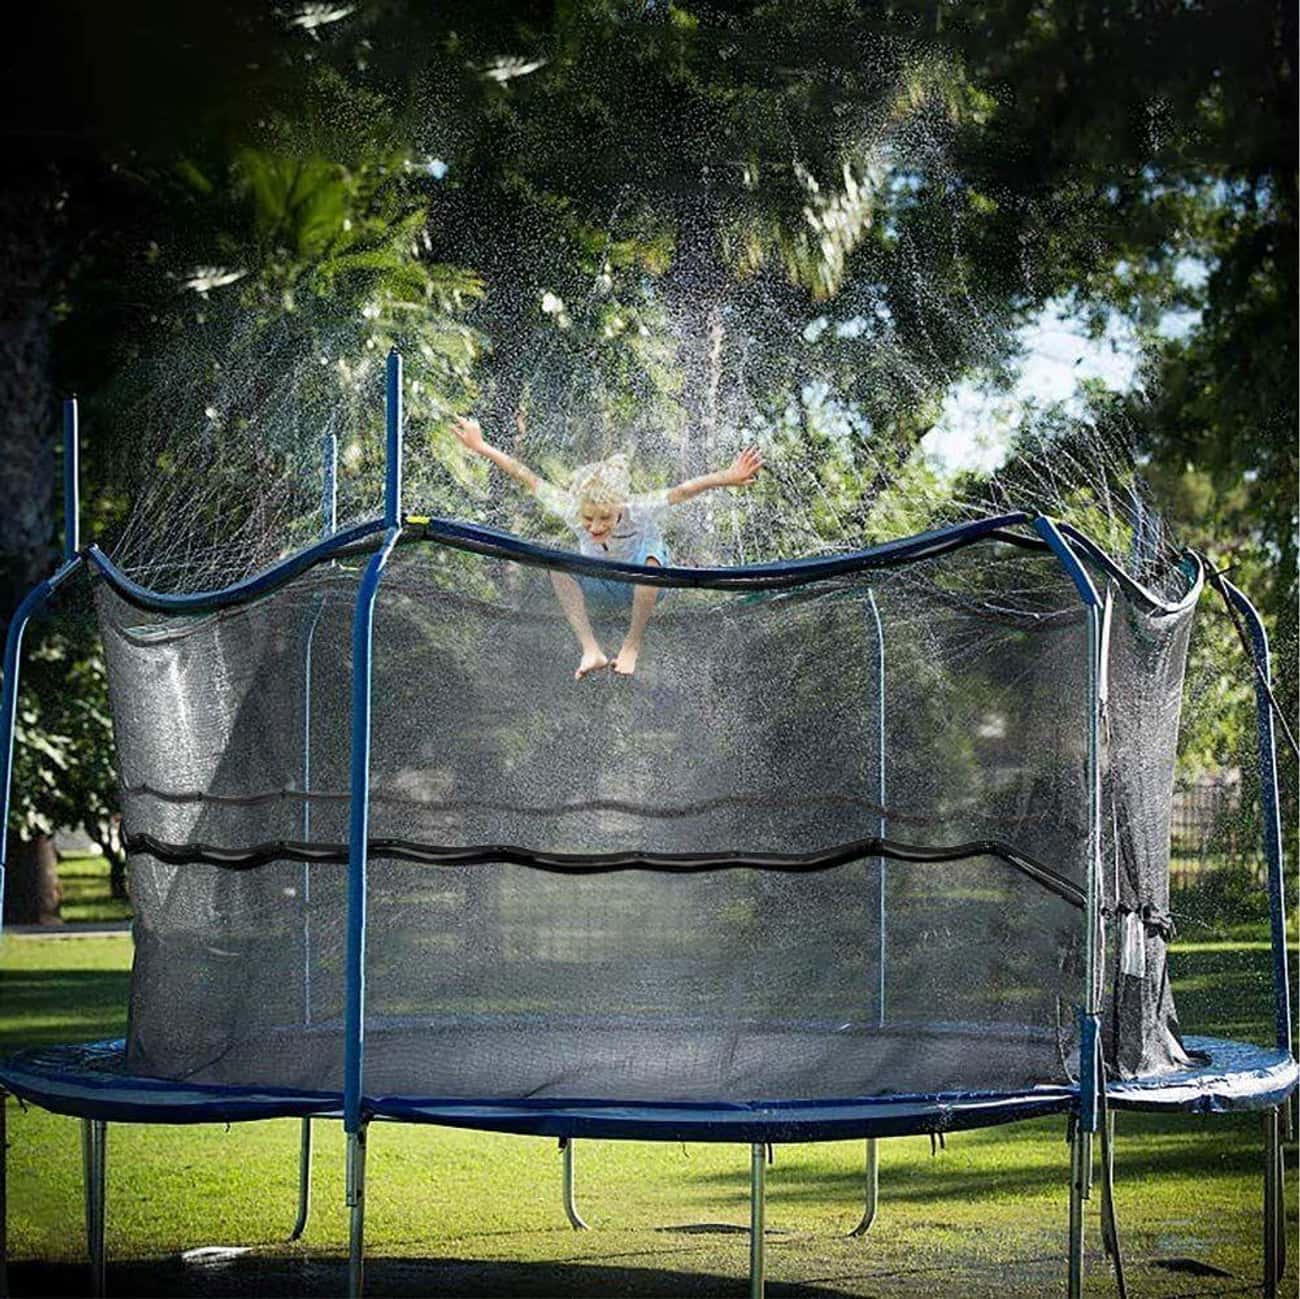 Trampoline Sprinkler is listed (or ranked) 2 on the list 13 Backyard Water Toys That Are Sure To Keep The Kiddos Busy (For A Few Mins, At Least)